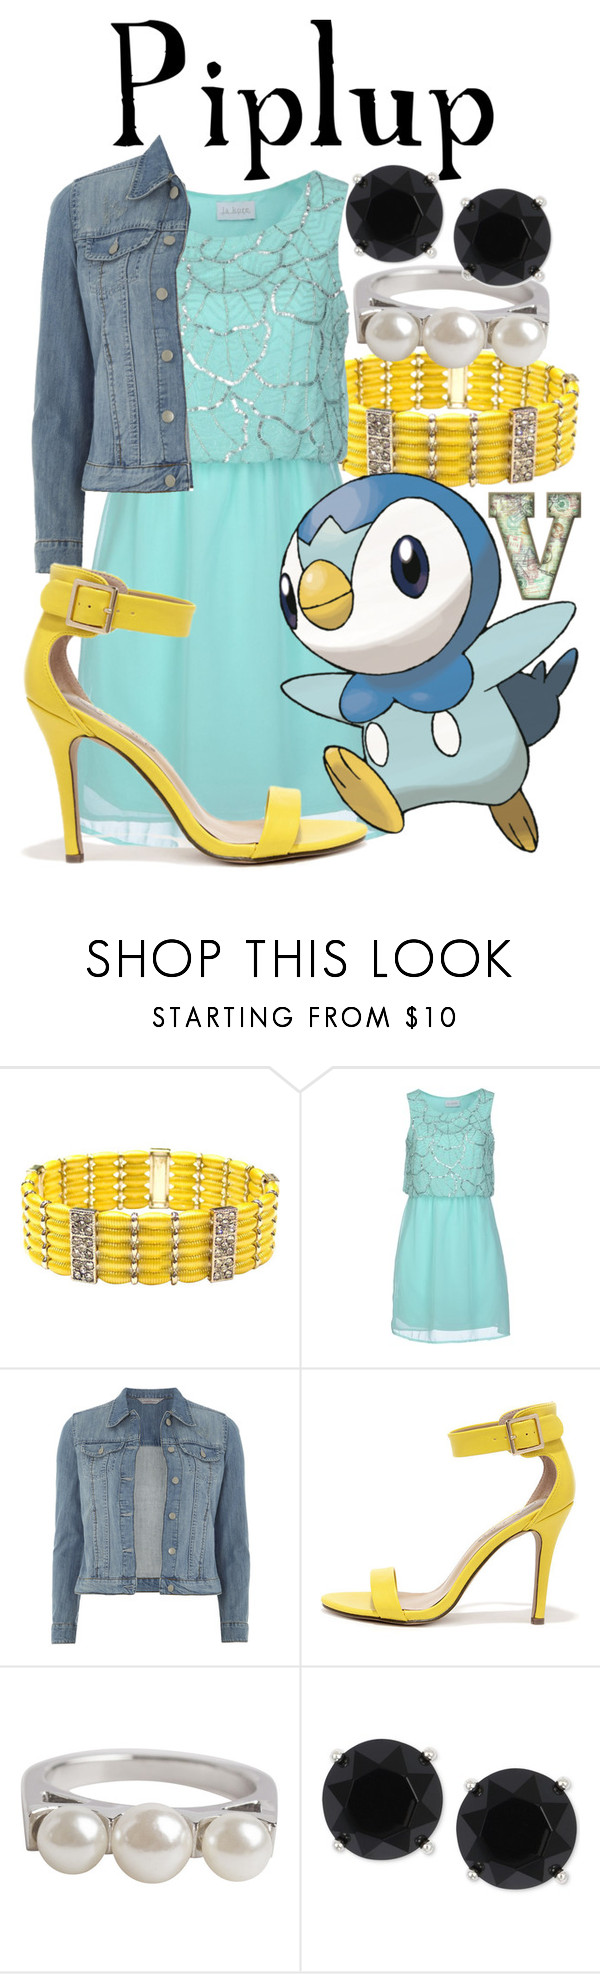 """Piplup (Pokemon)"" by fabfandoms ❤ liked on Polyvore featuring Carissima Bijoux, La Kore, Dorothy Perkins, Breckelle's, Pieces and Anne Klein"